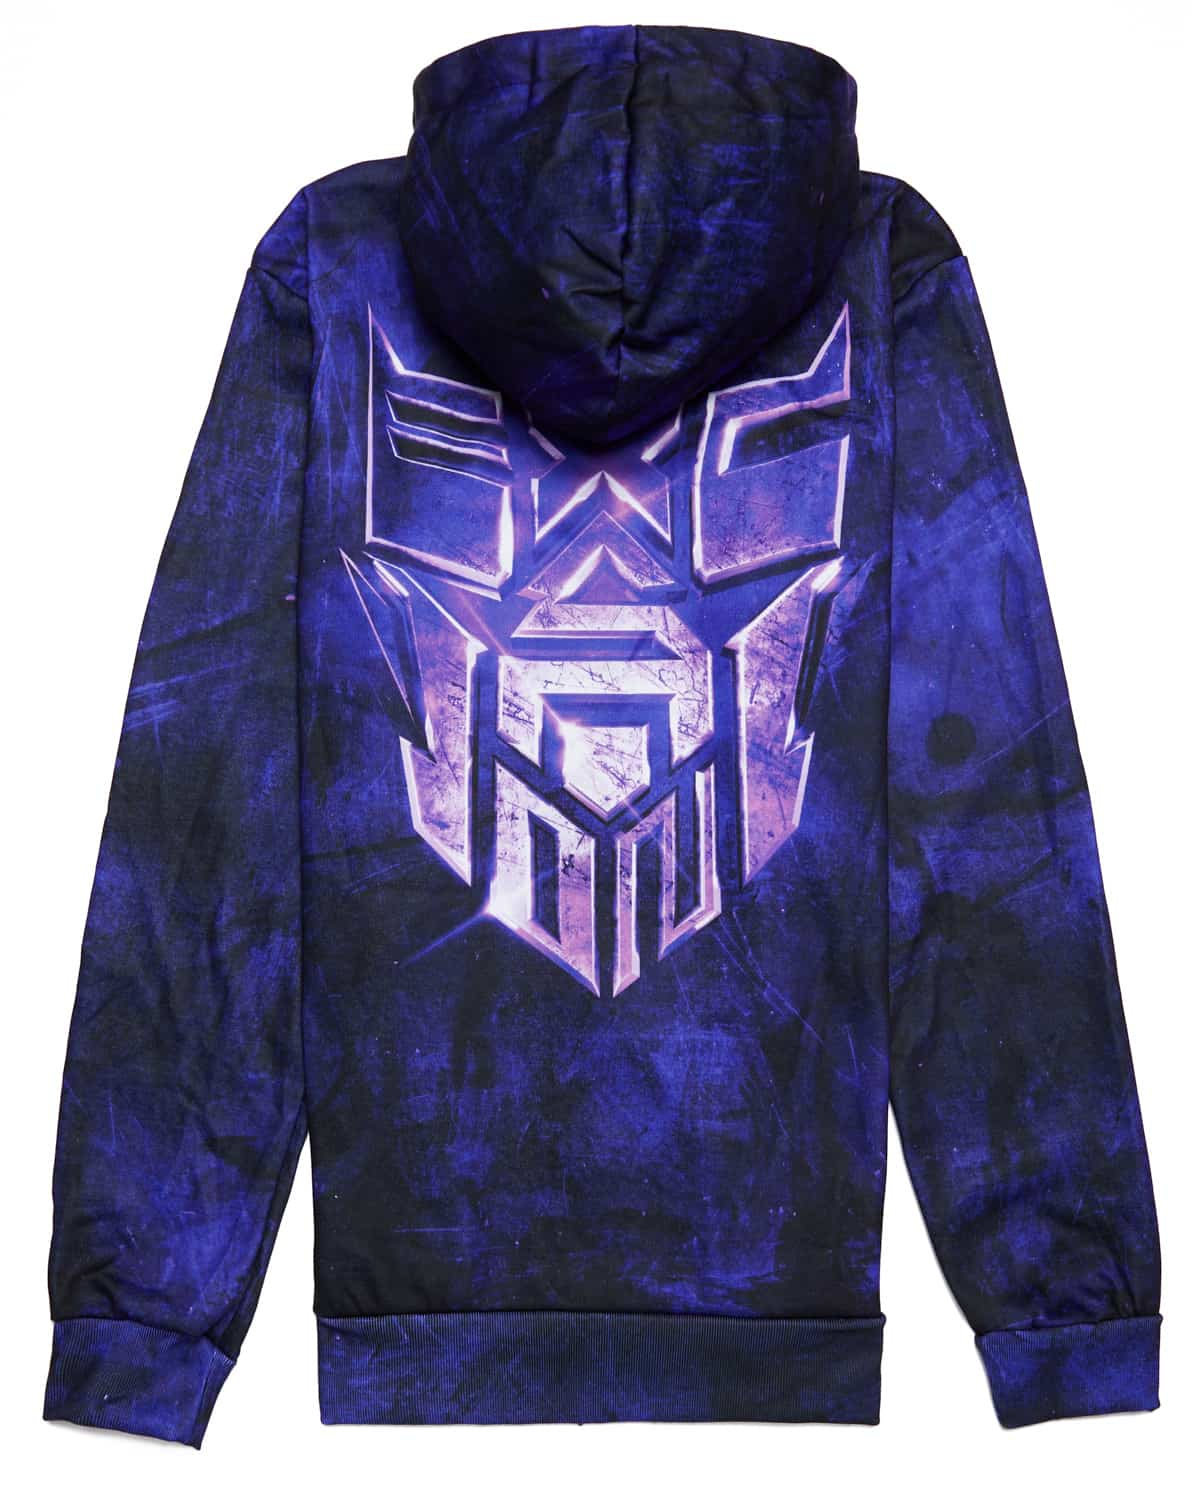 Excision 'Decepticon' Full-Zip Hoodie - Sapphire